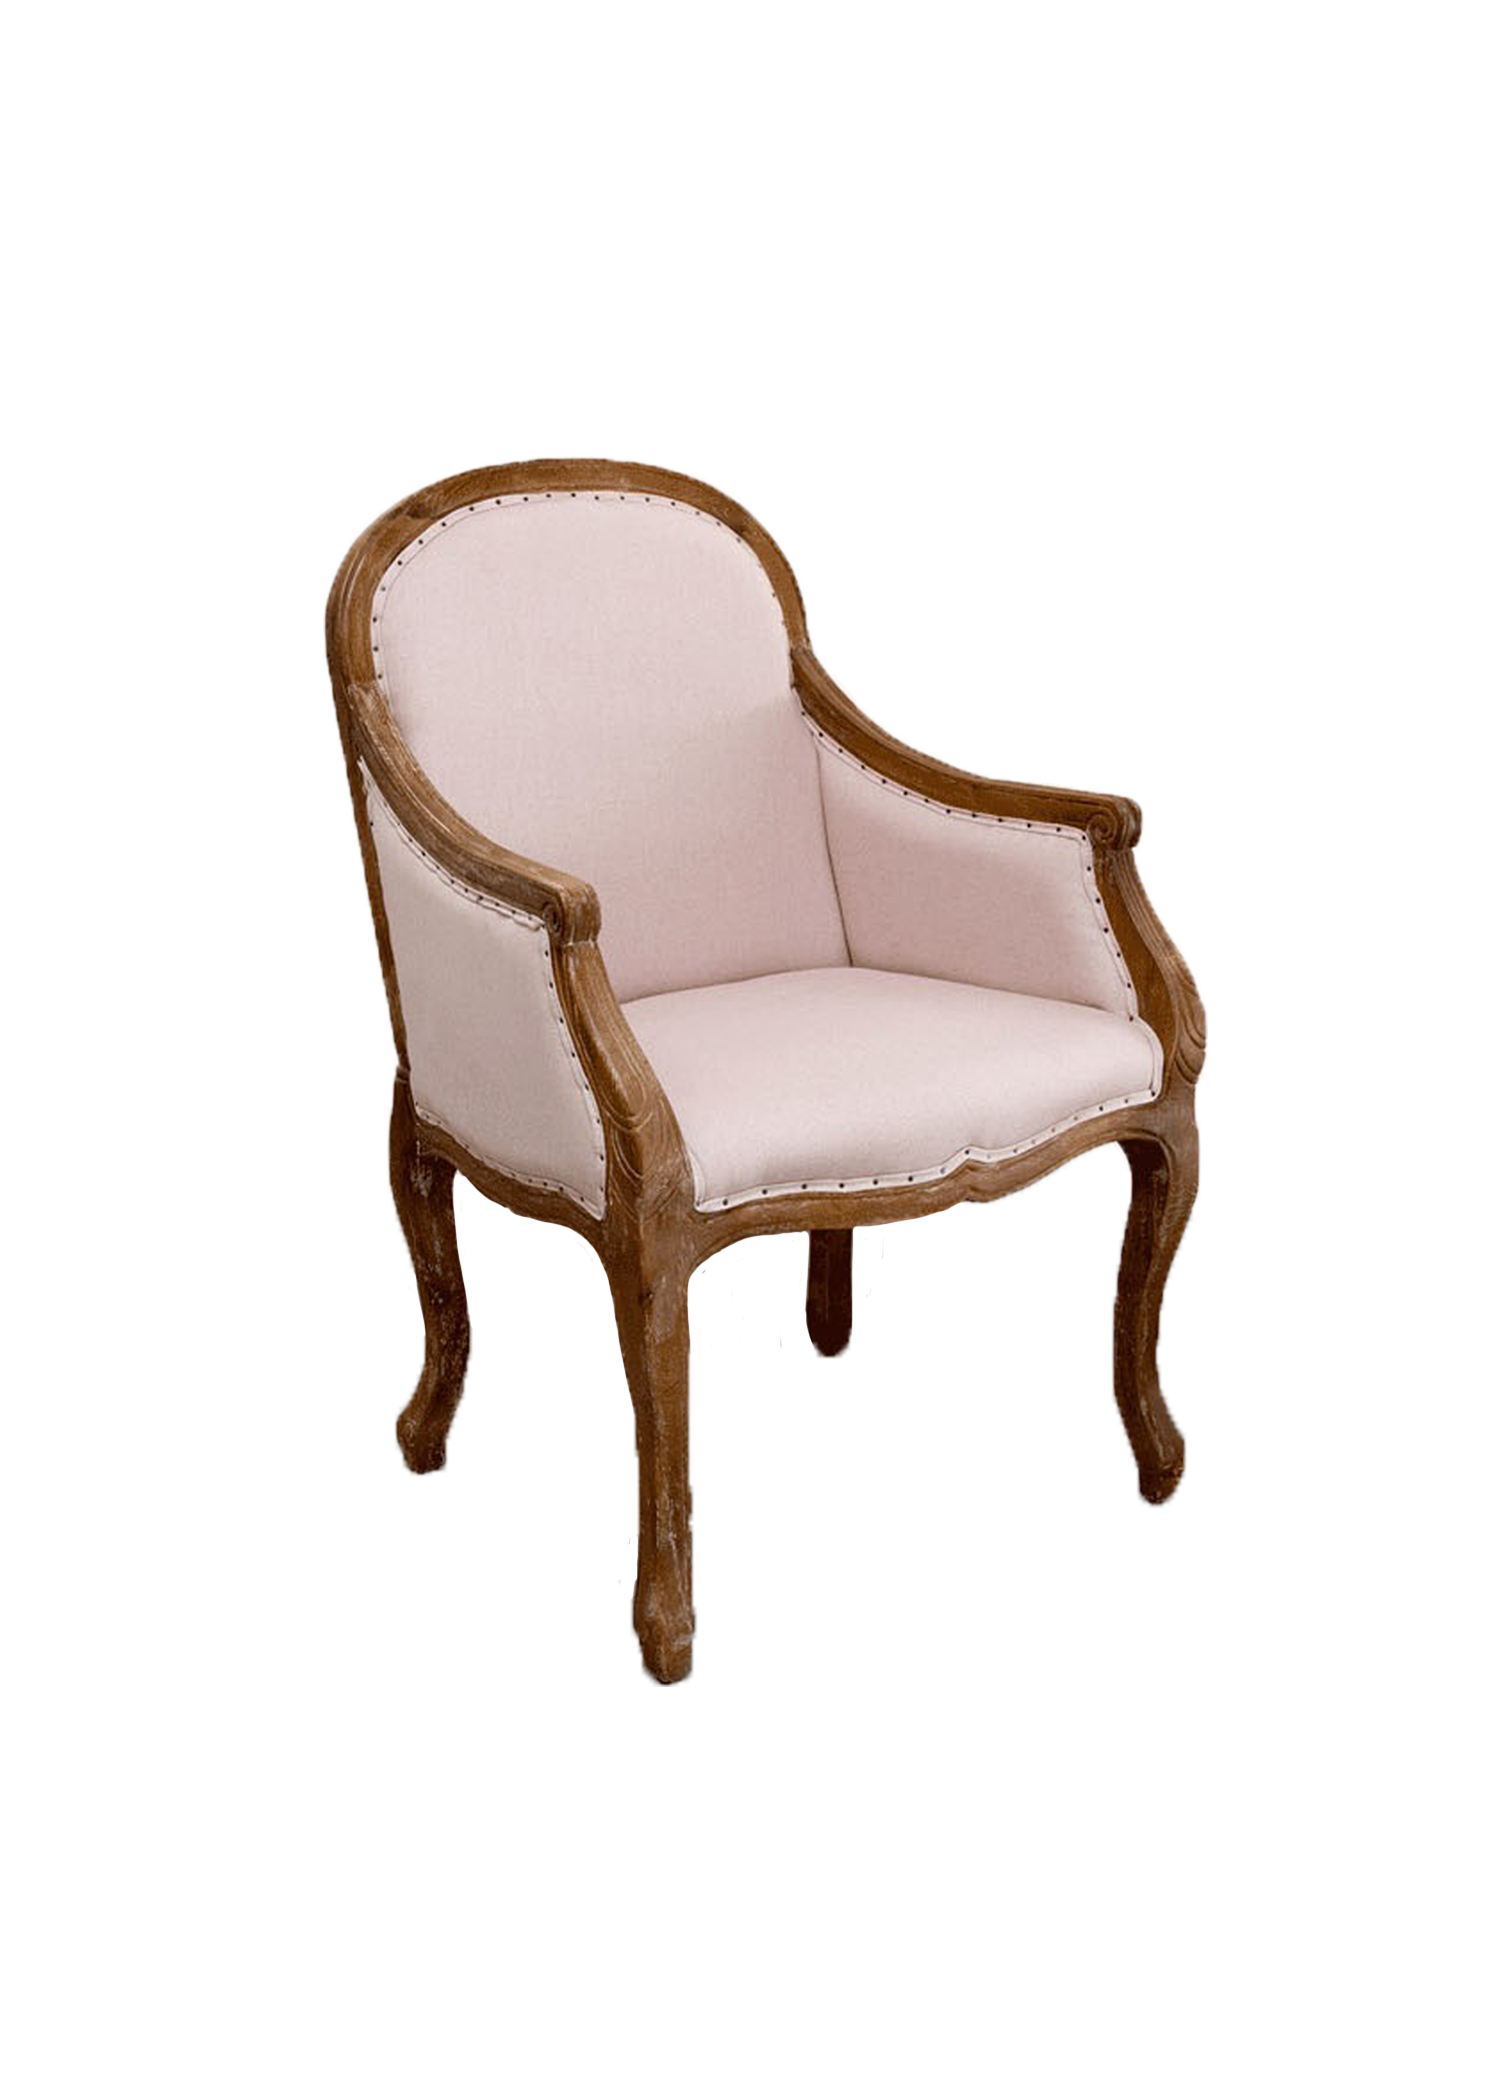 $75 Sofia Chair